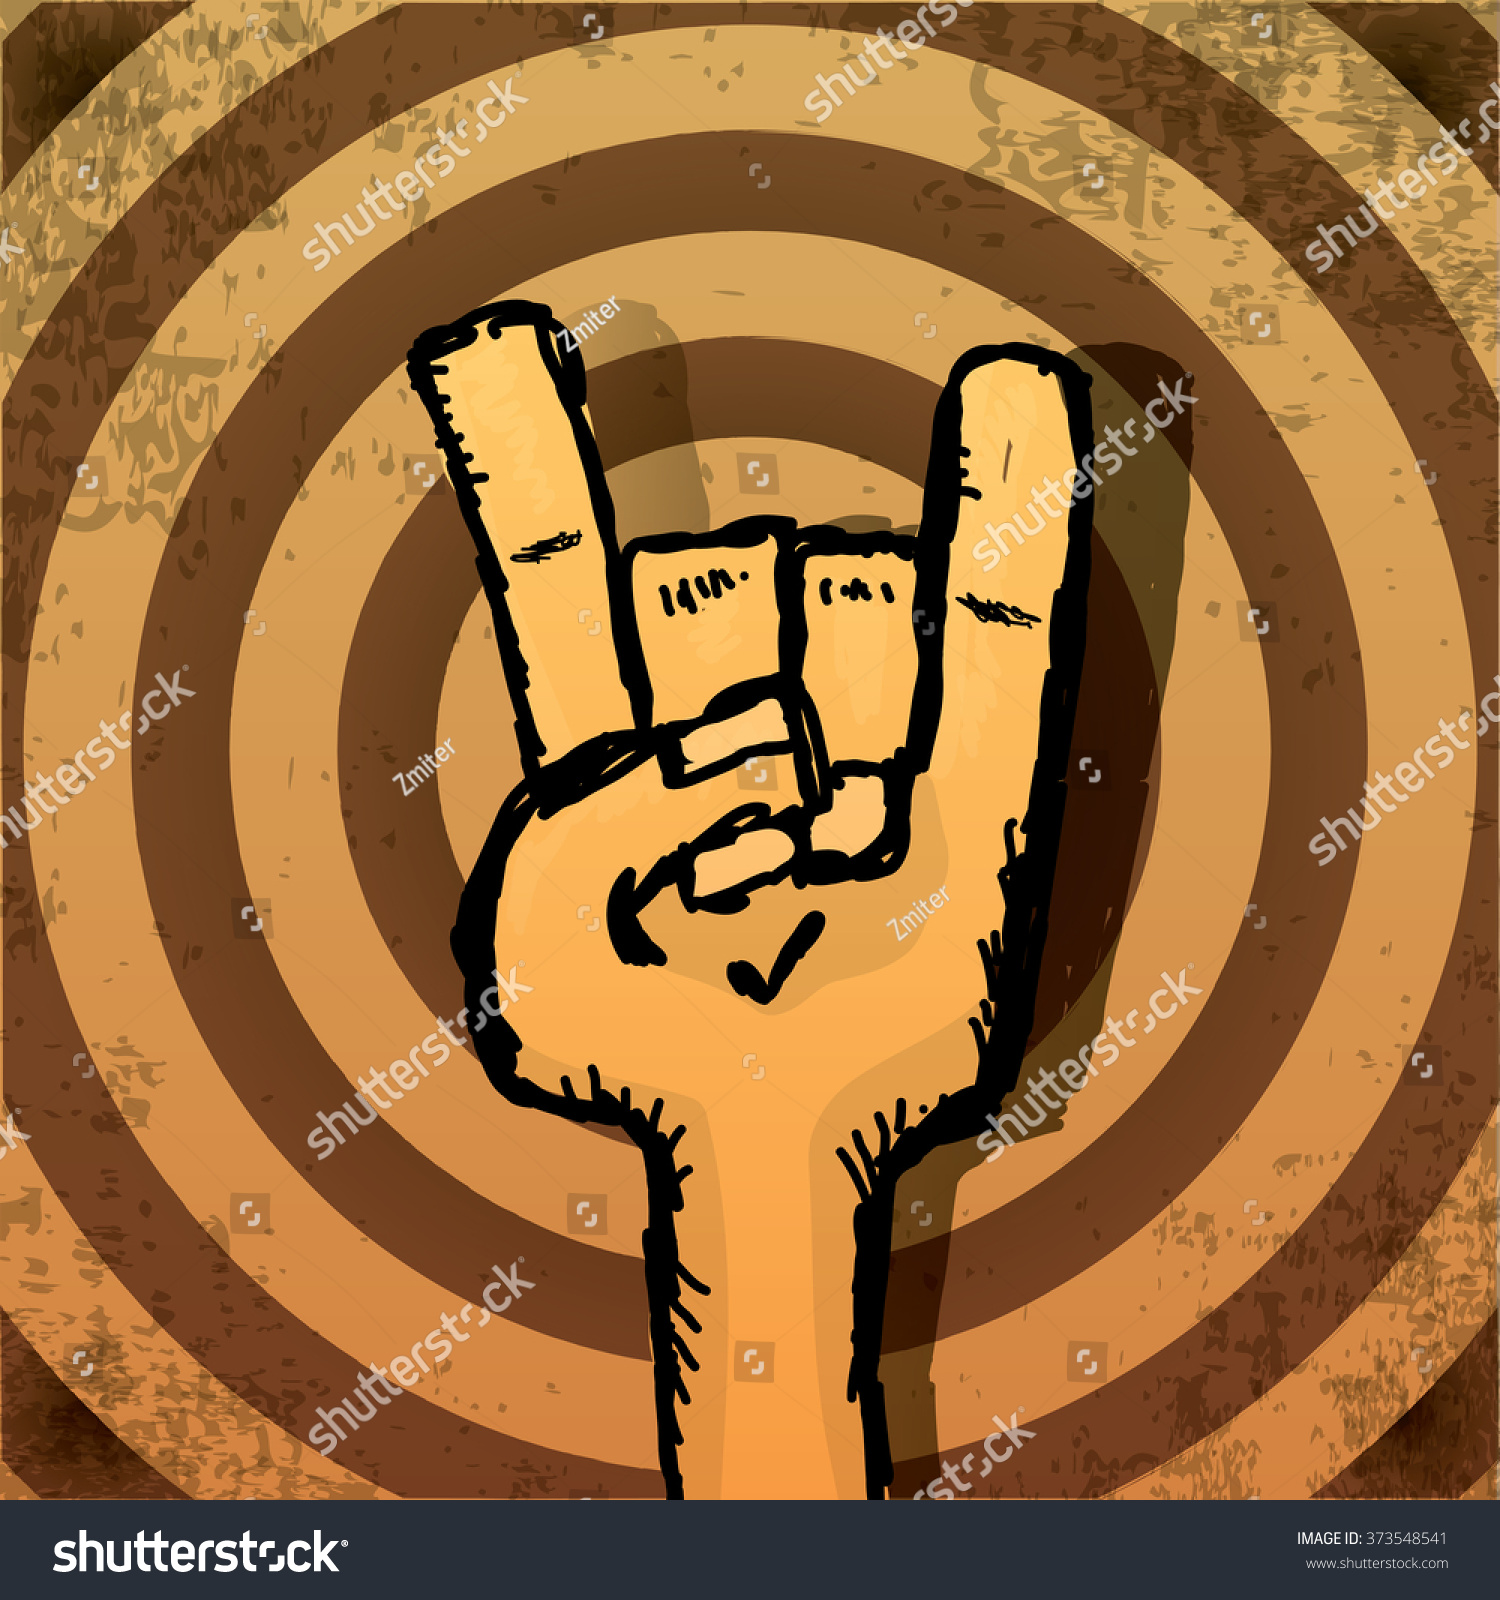 Rock n roll poster design - Vector Rock N Roll Music Background Rock N Roll Icon Vector Rock Concert Poster